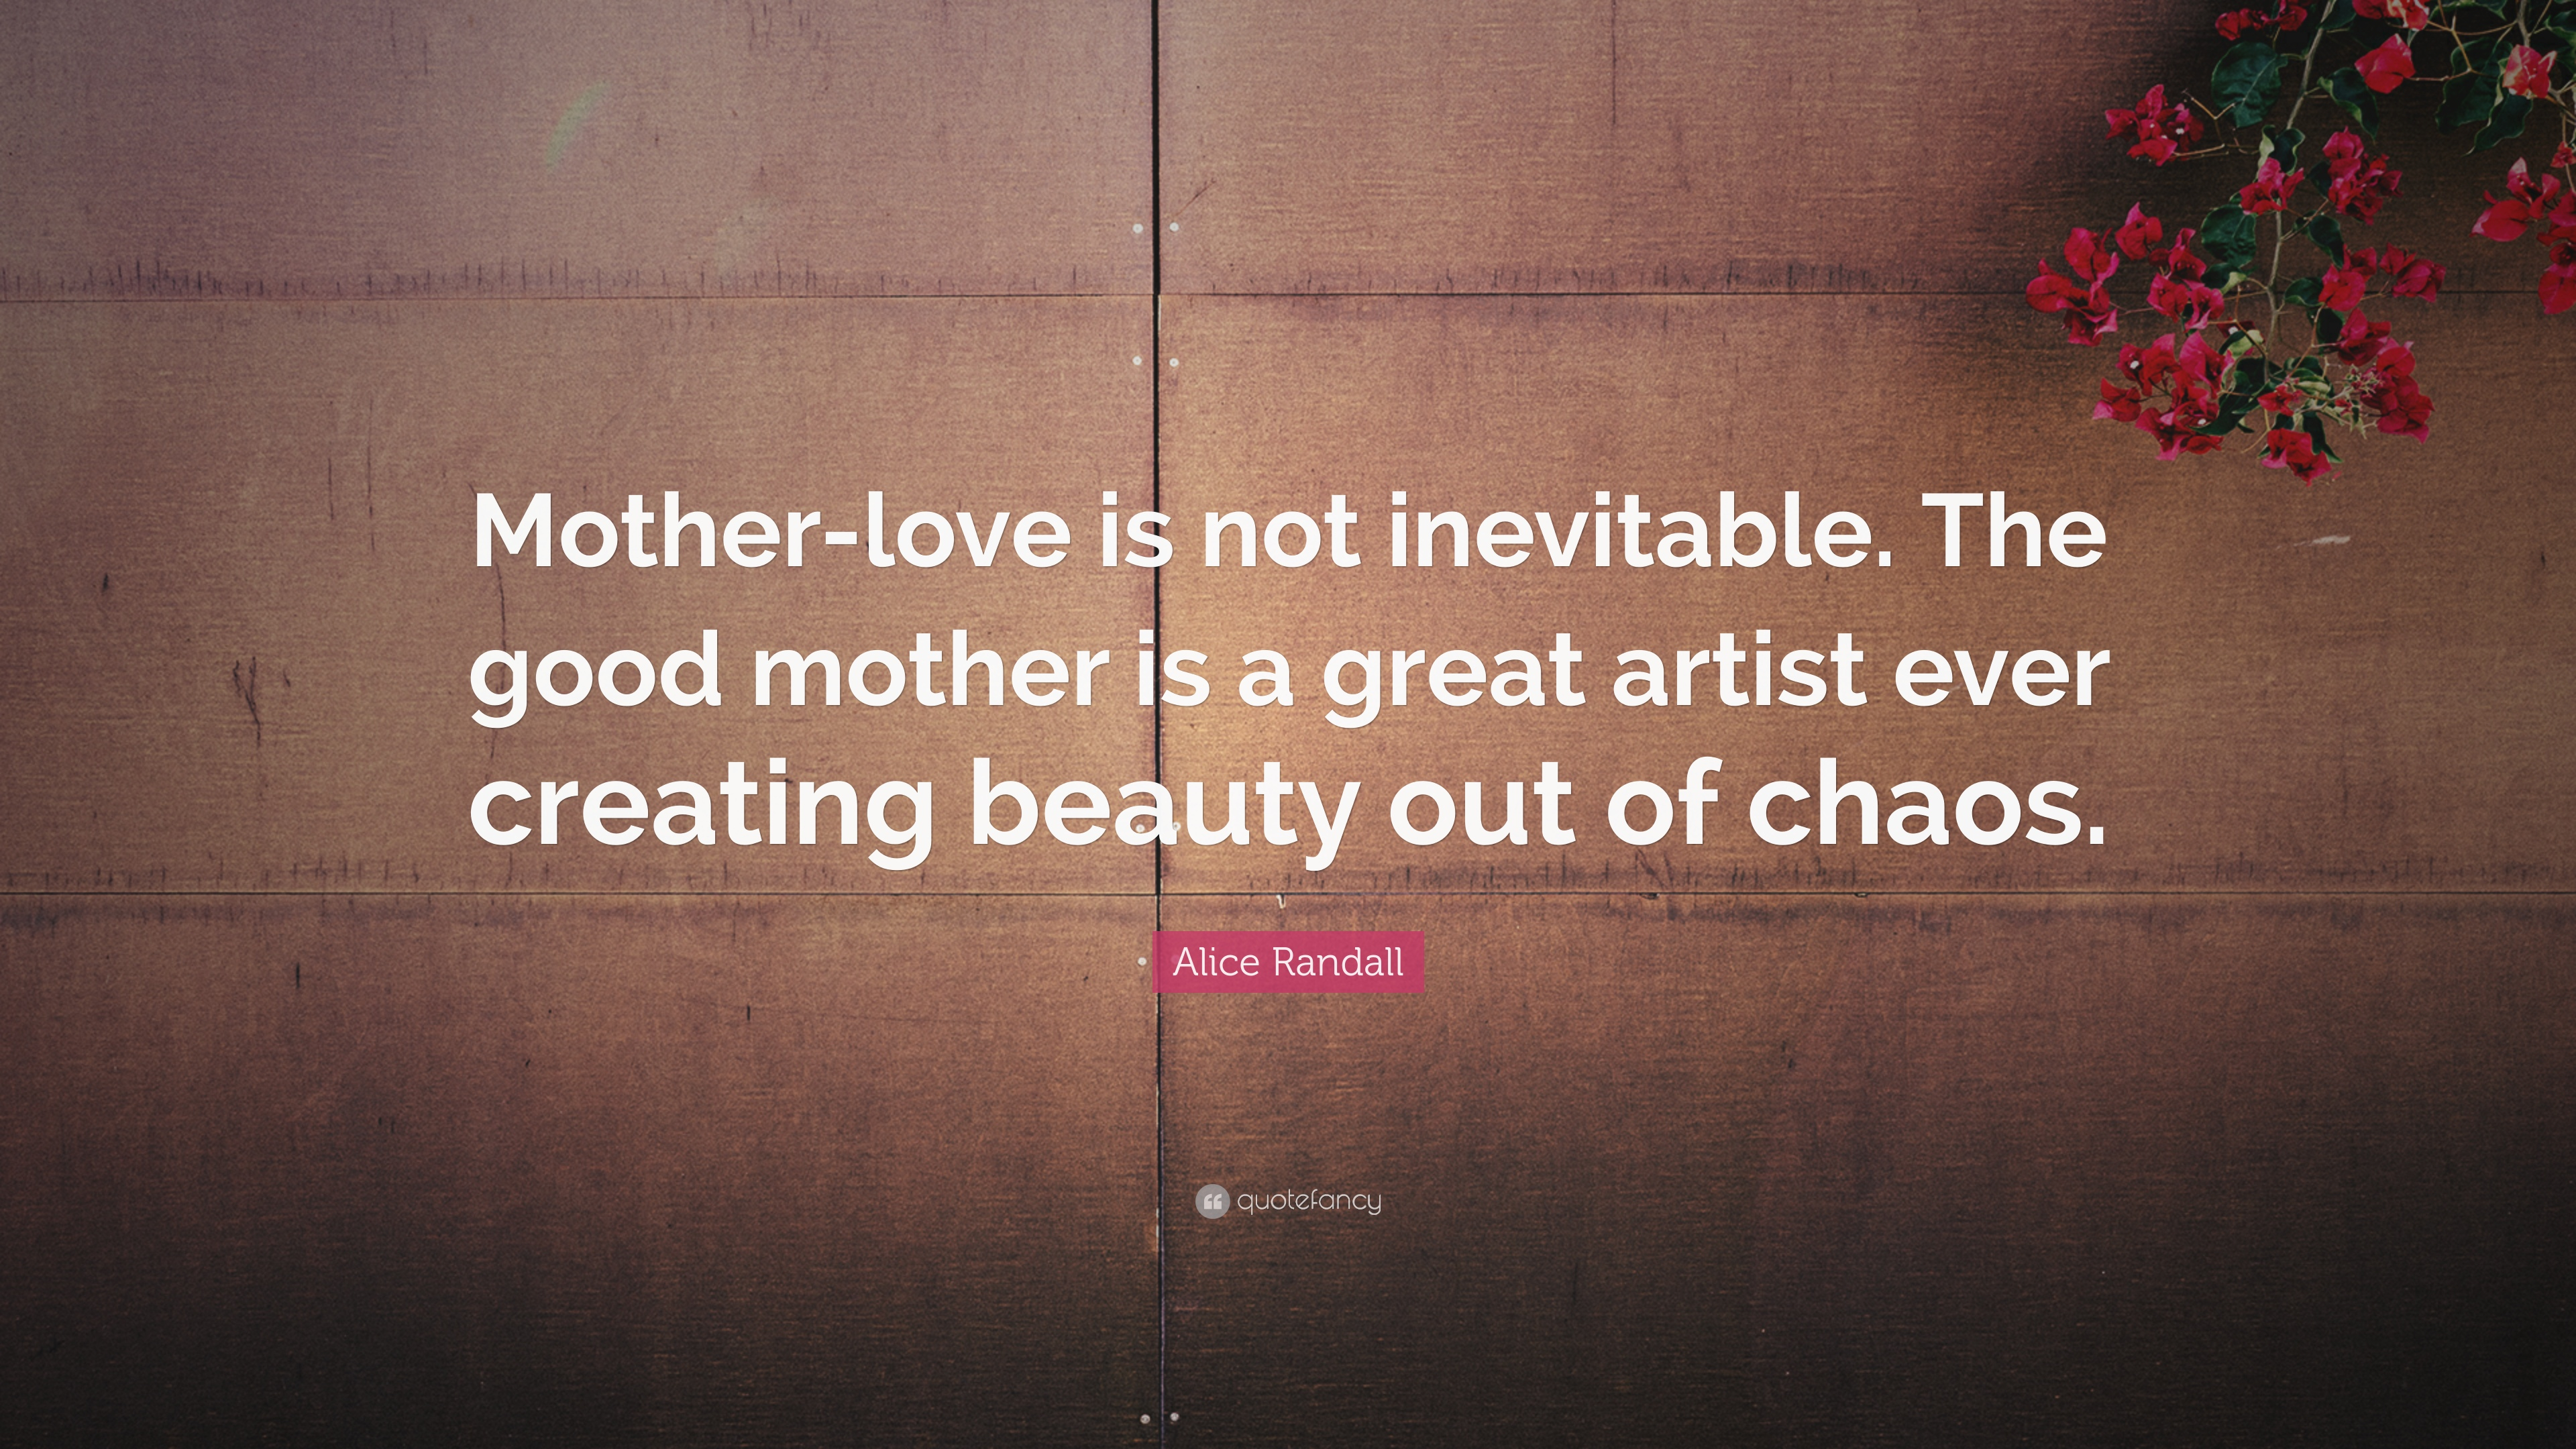 A Mothers Love Quotes 2 Alice Randall Quotes 2 Wallpapers  Quotefancy